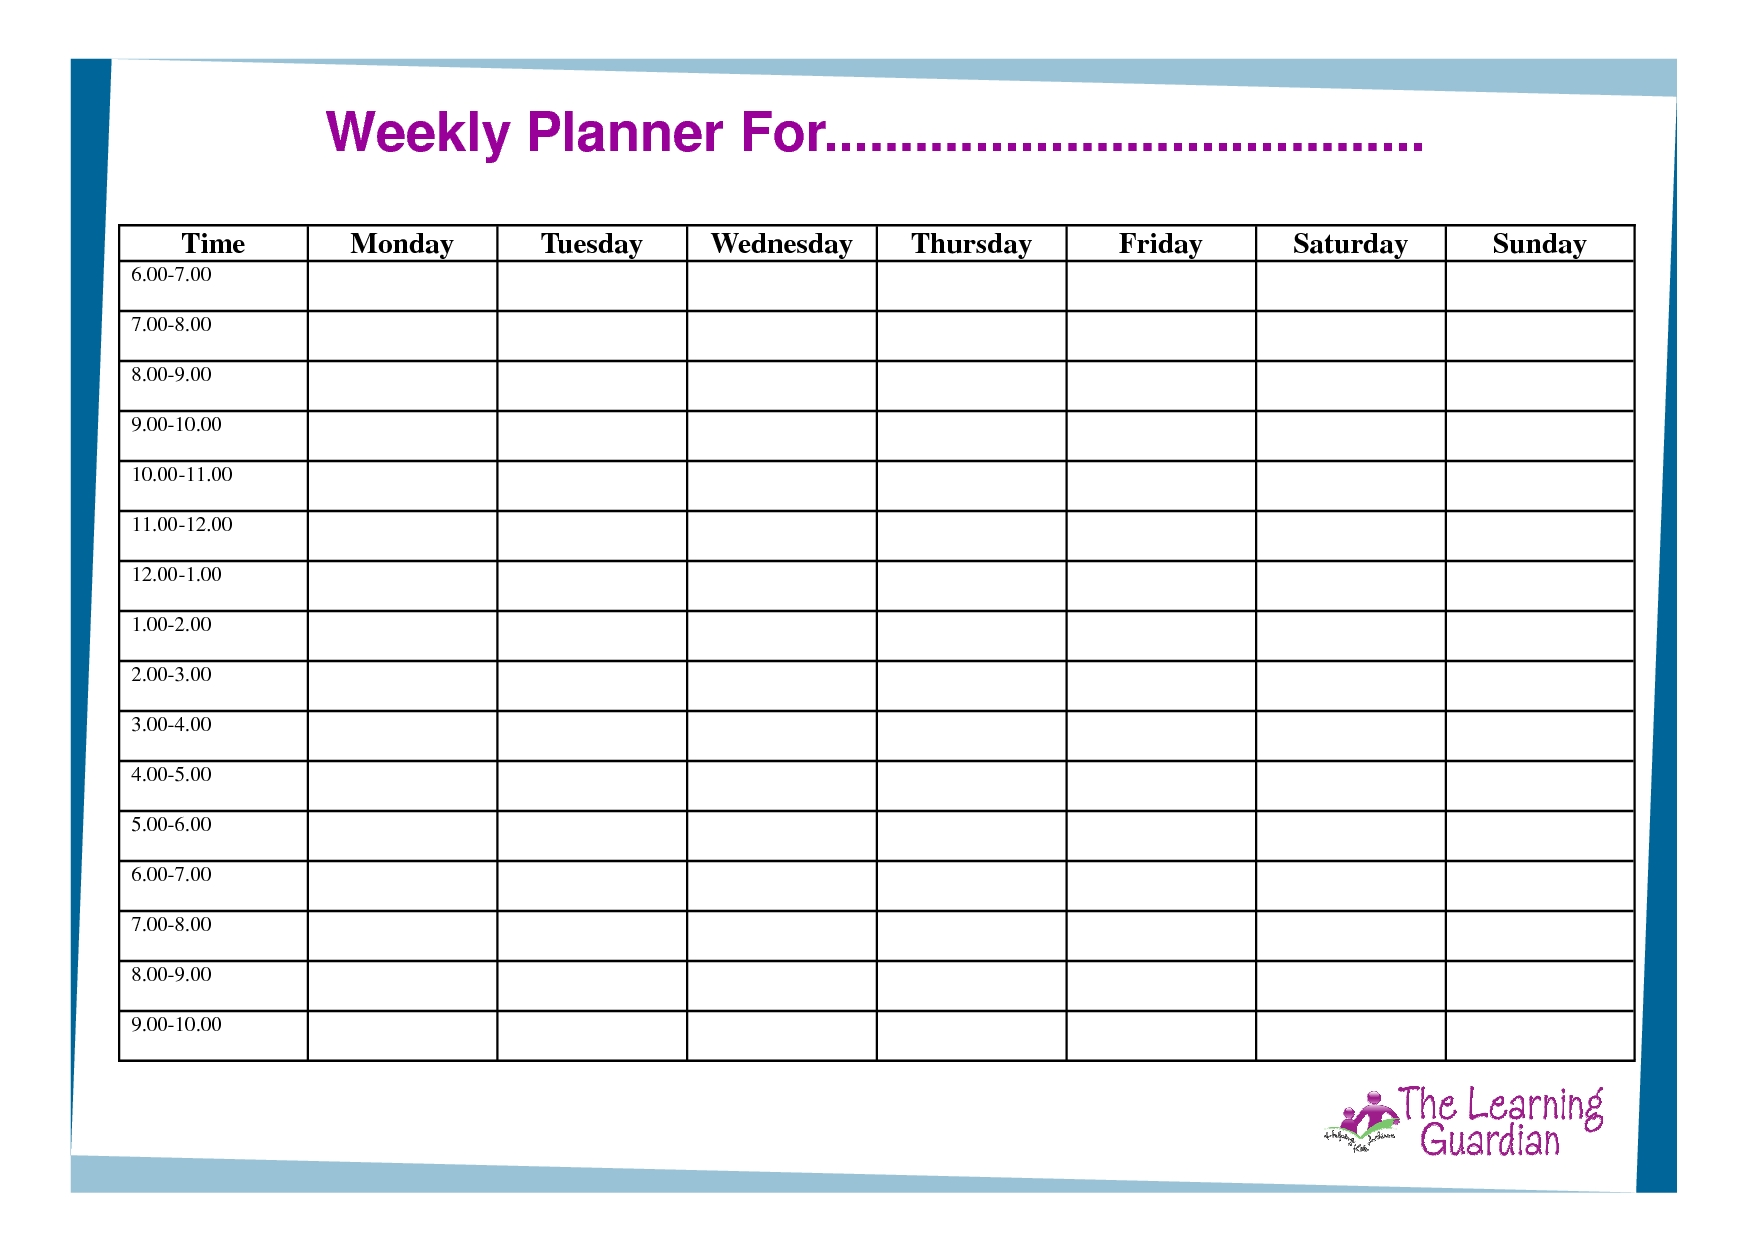 Free Printable Weekly Calendar Templates | Weekly Planner-Template For Monday To Friday